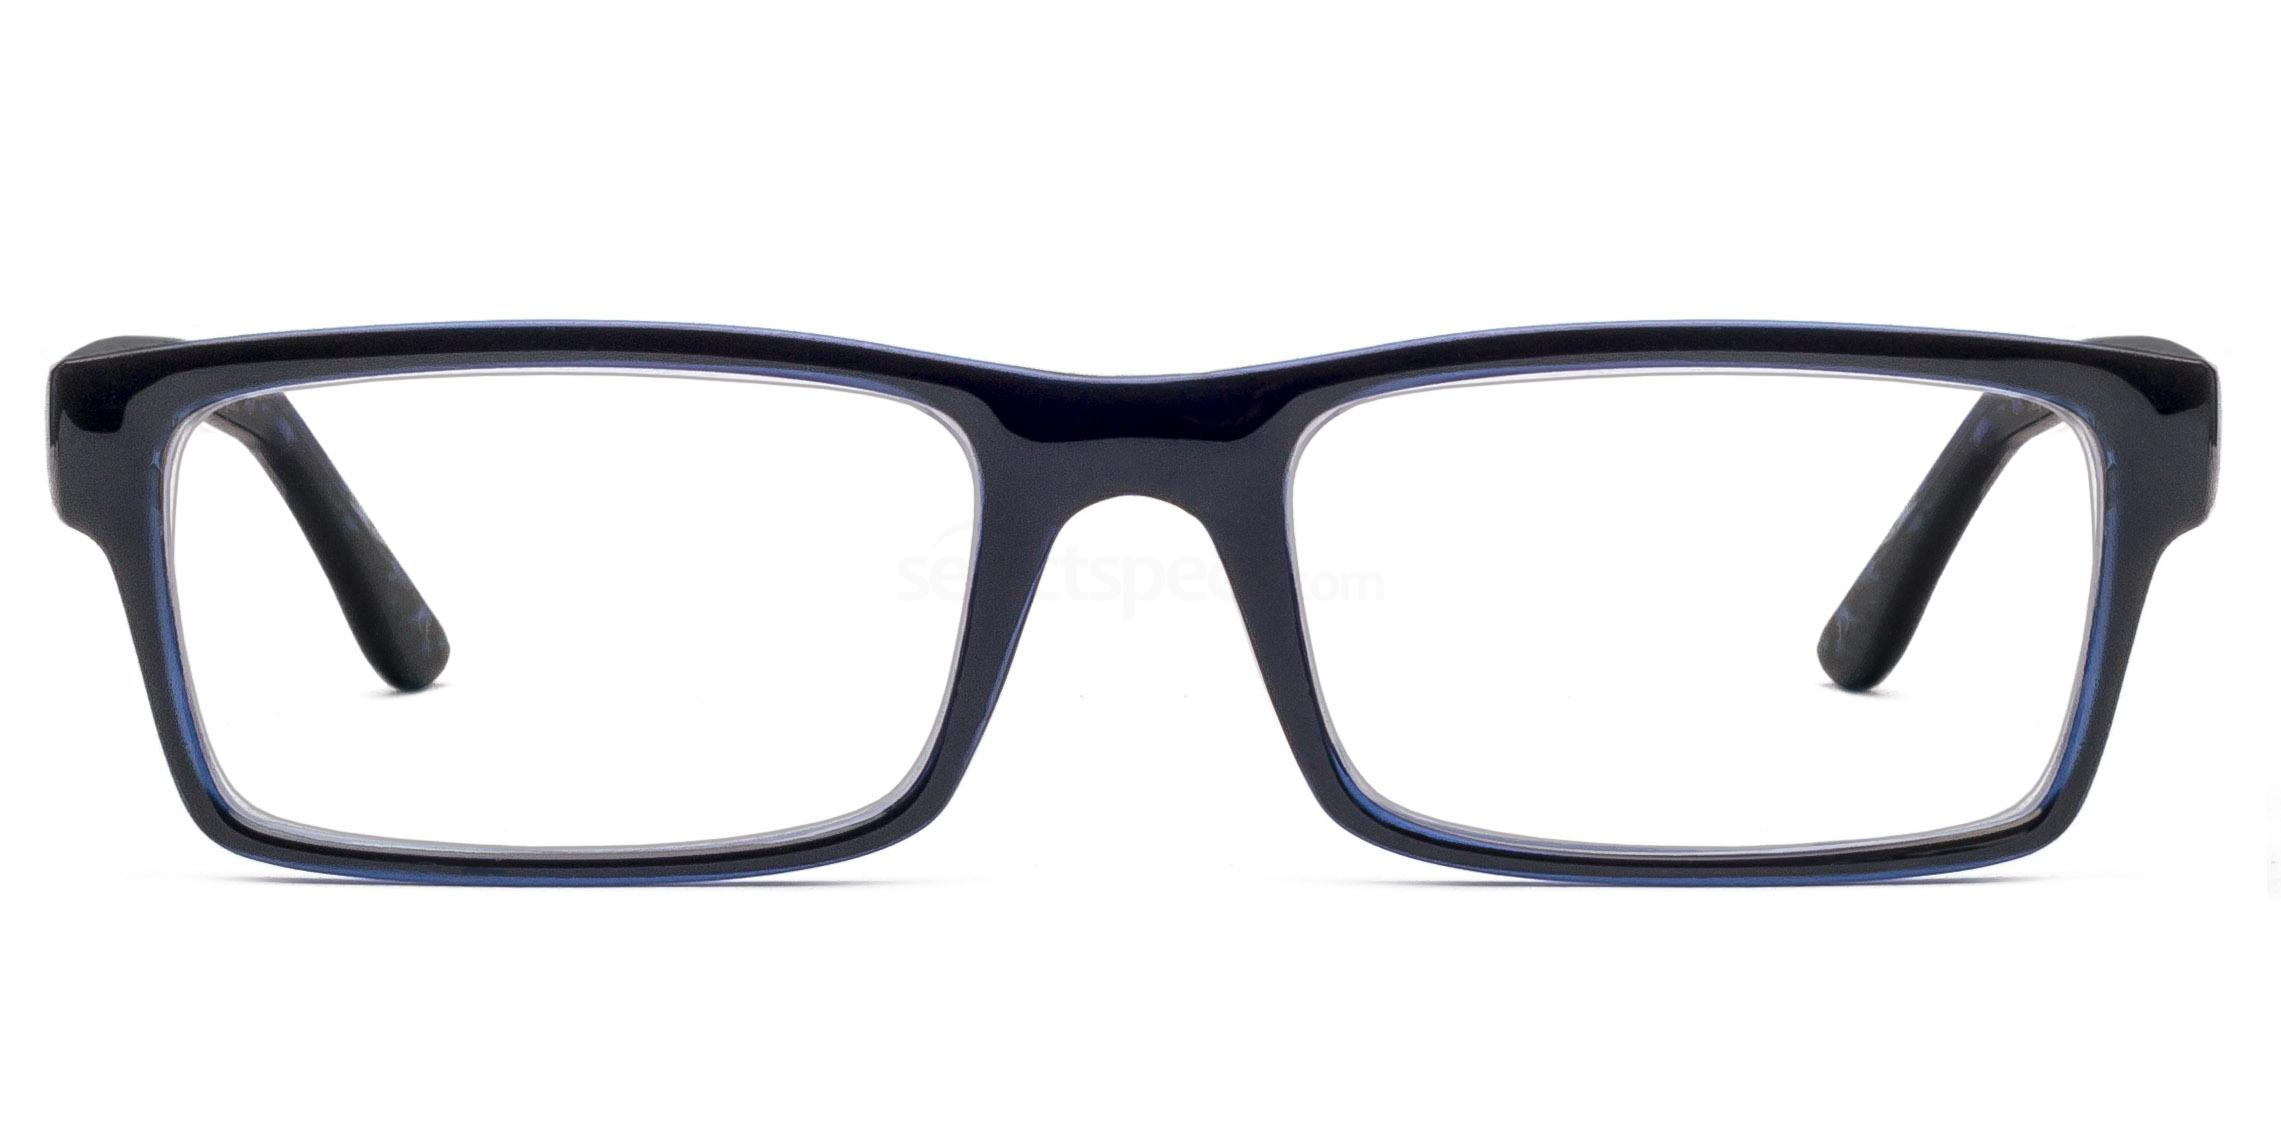 Col. 35 2329 - Black on Blue Glasses, Savannah